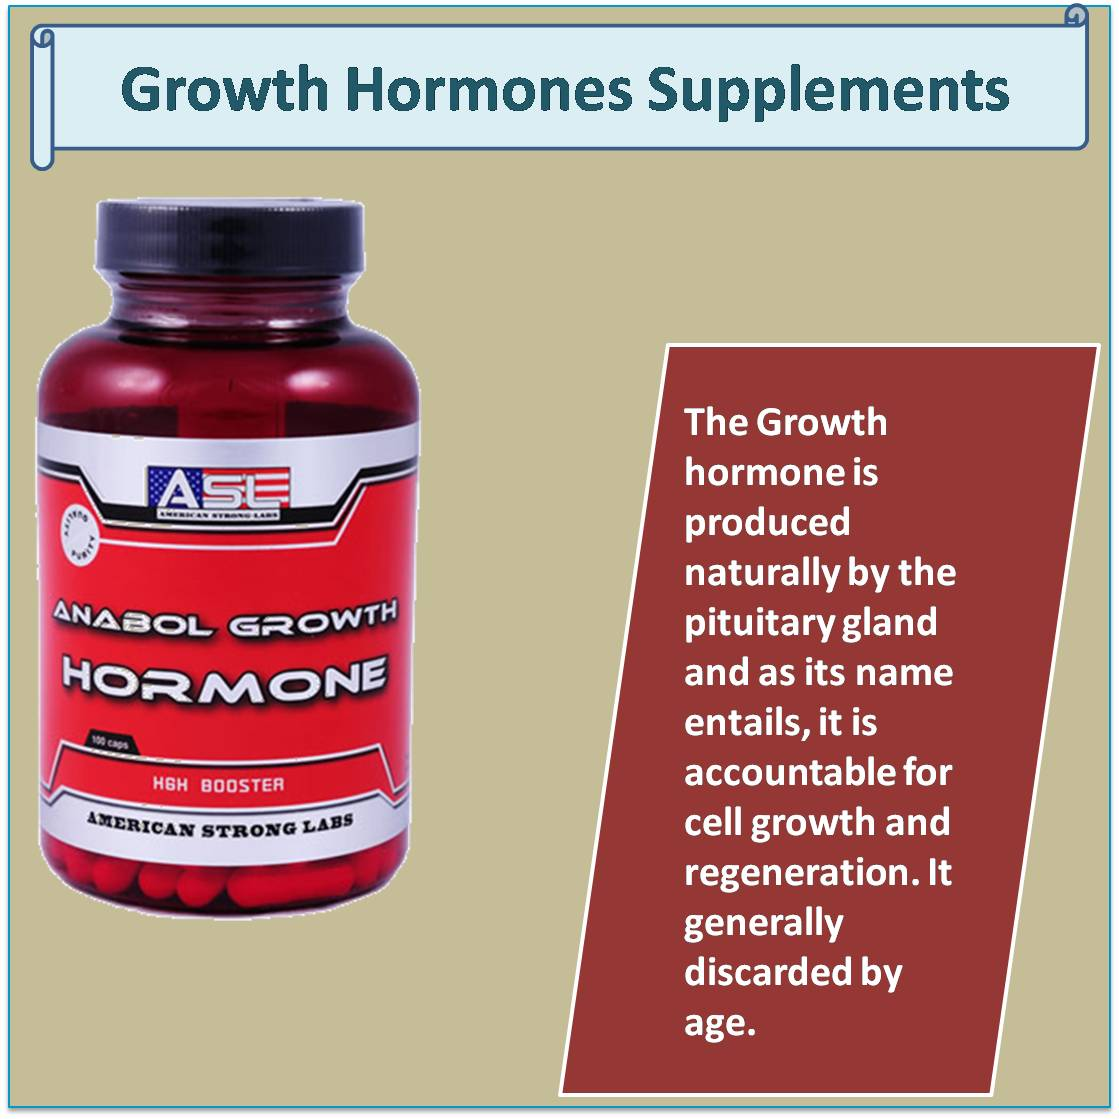 Growth Hormones Supplements